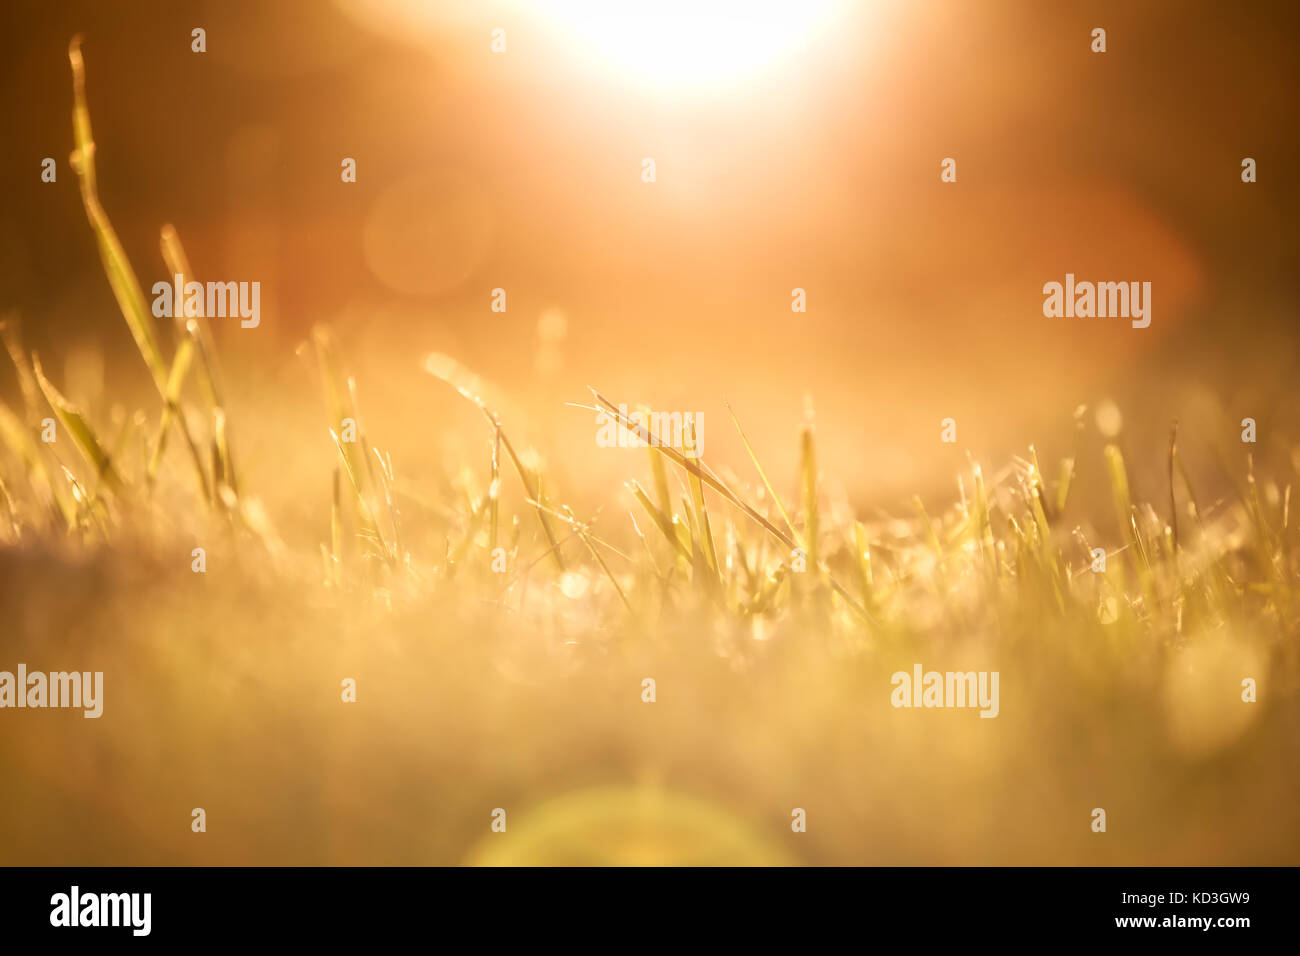 A warm, closeup macro shot of some blades of grass during sunset. - Stock Image